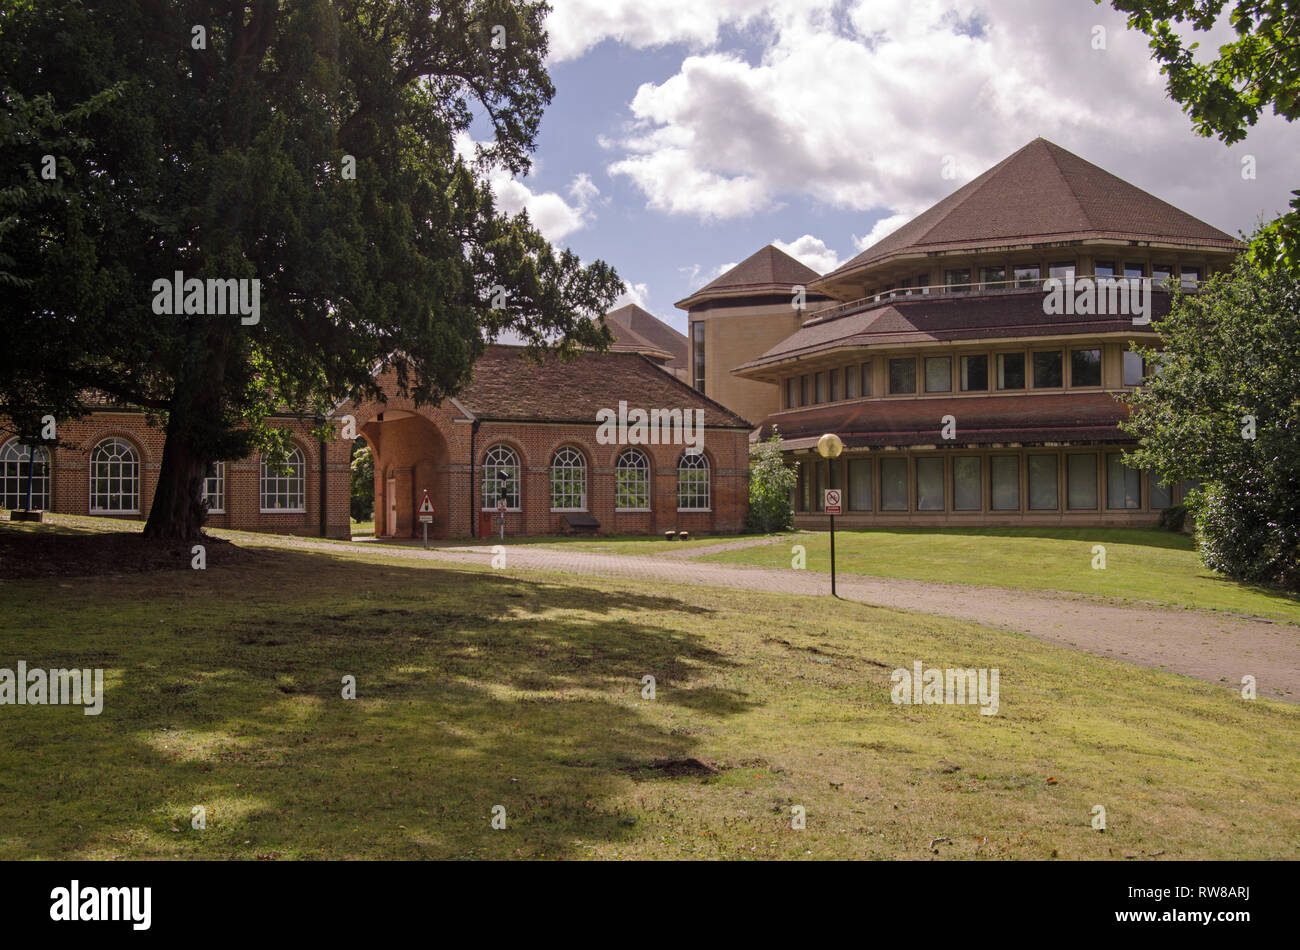 Abandoned offices at the historic Aldermaston Park in Berkshire.  There are controversial proposals to demolish the offices to make space for housing. - Stock Image